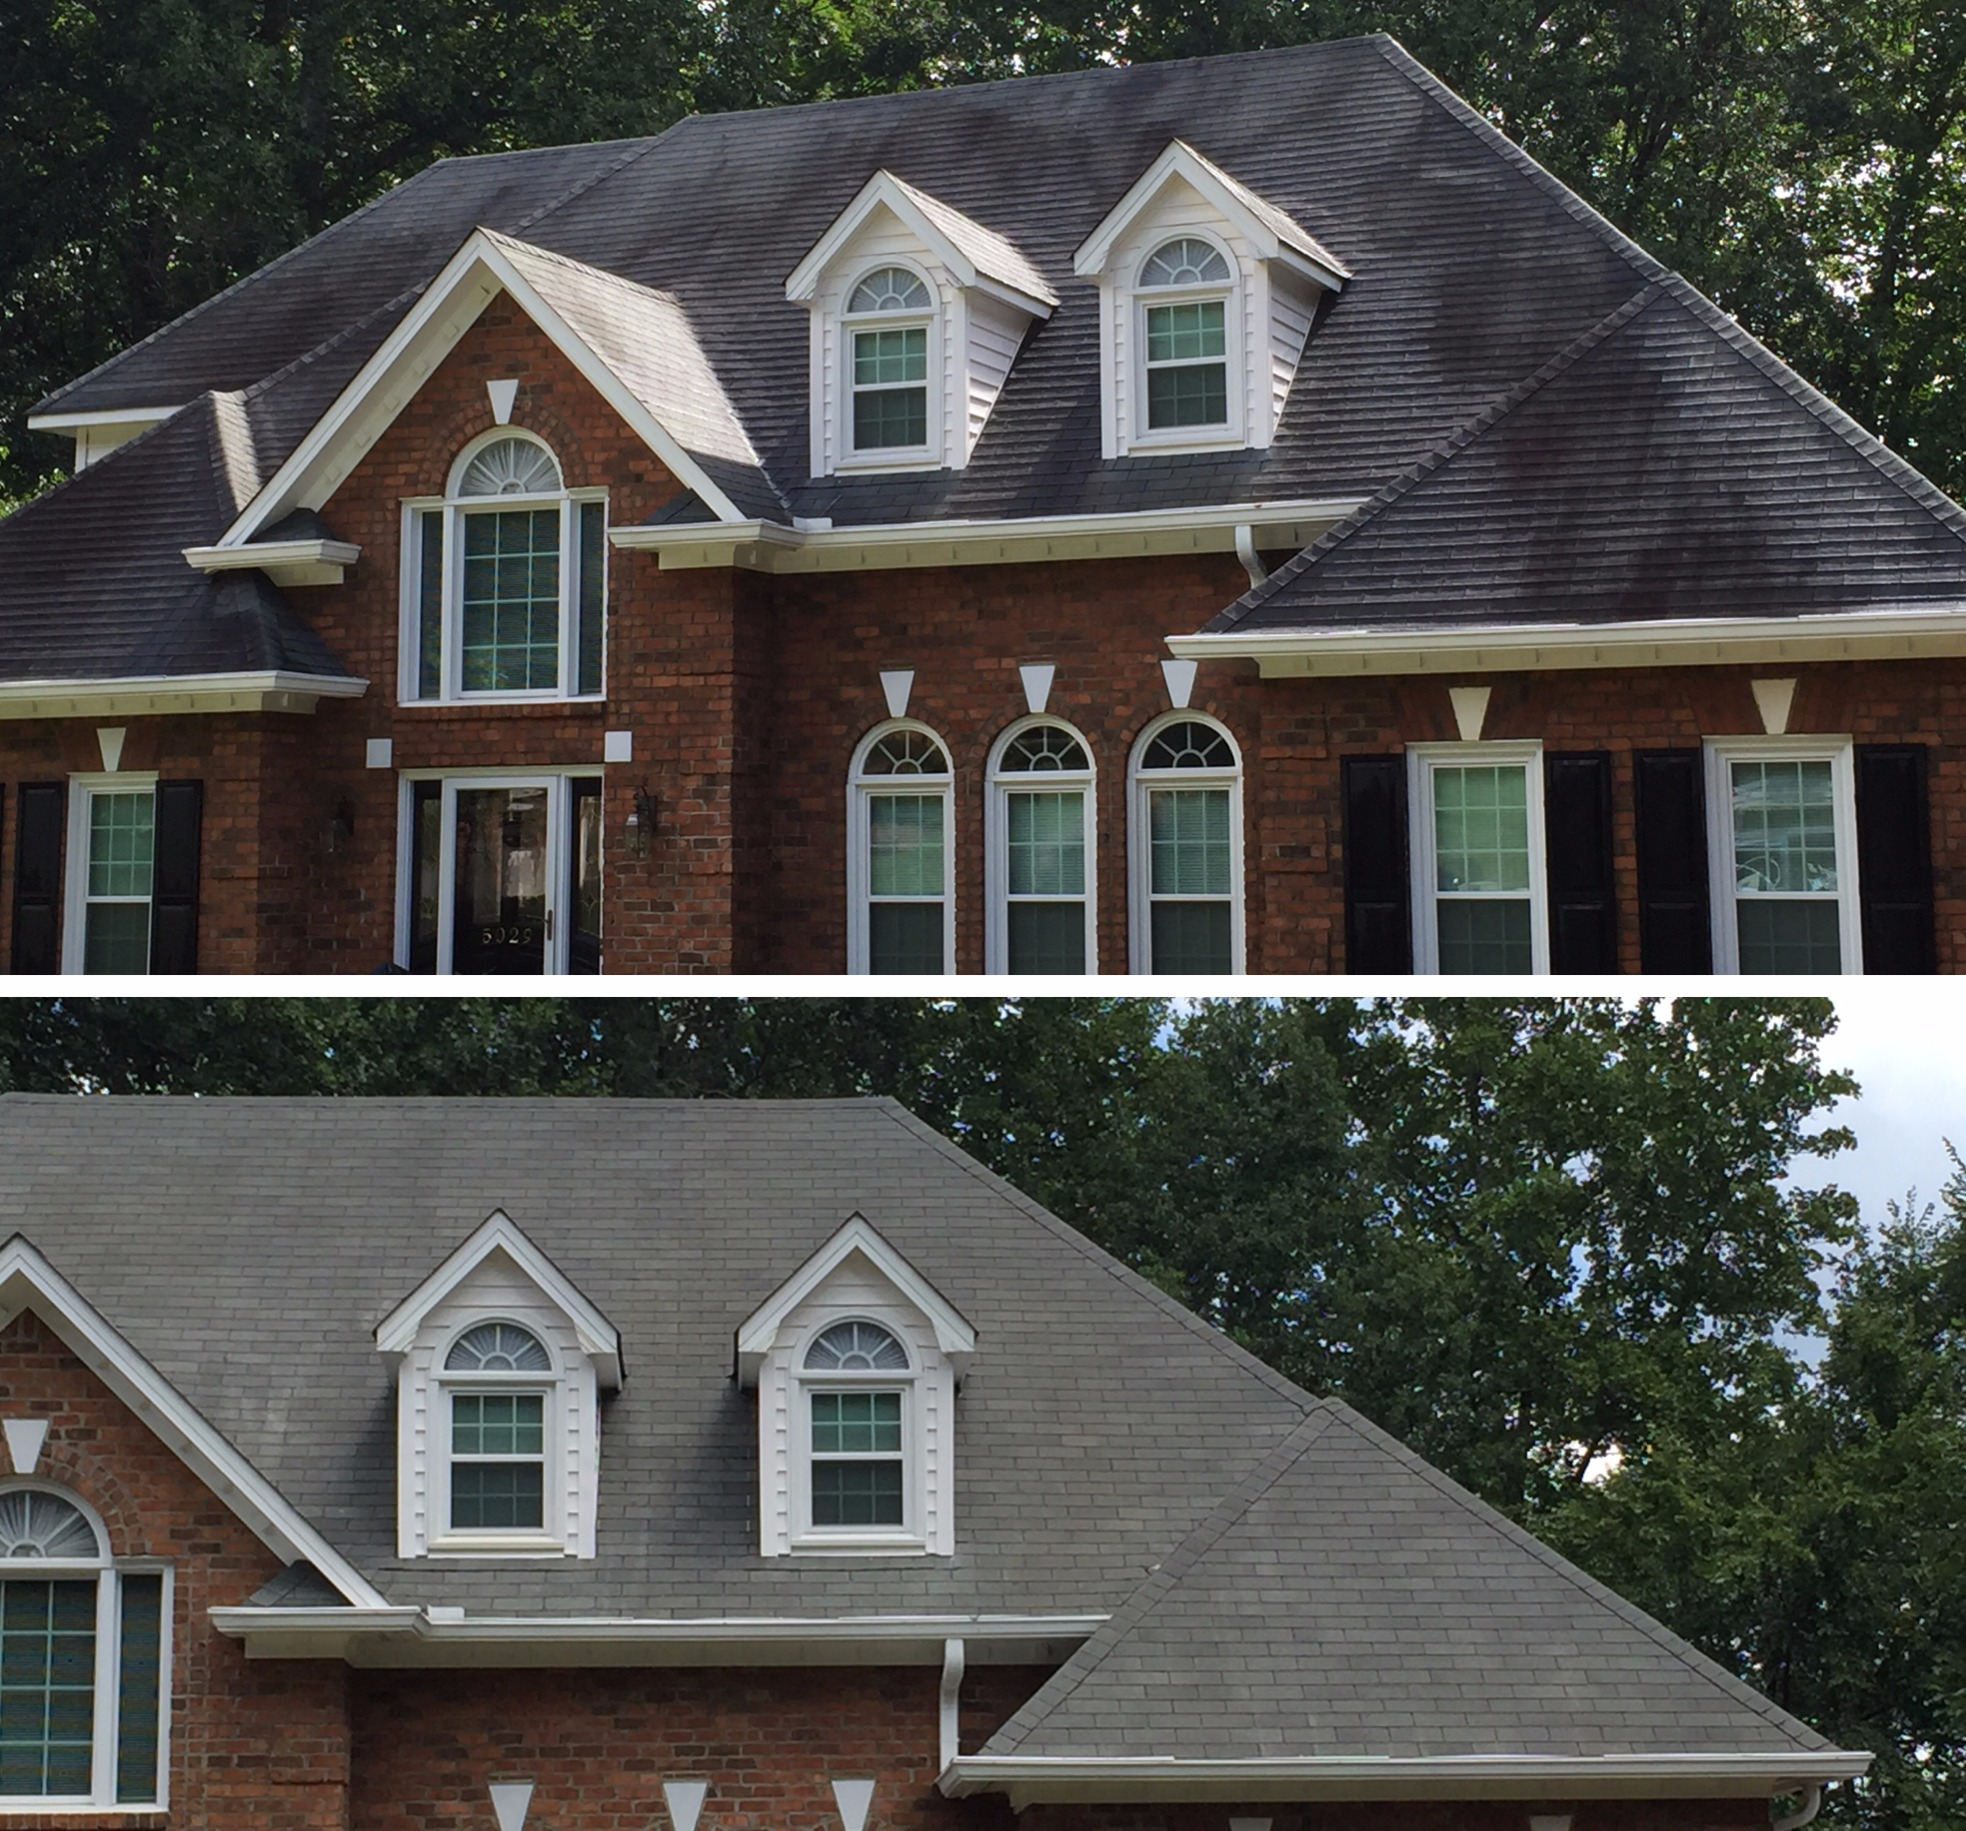 residential roof pressure washing in winston salem, nc